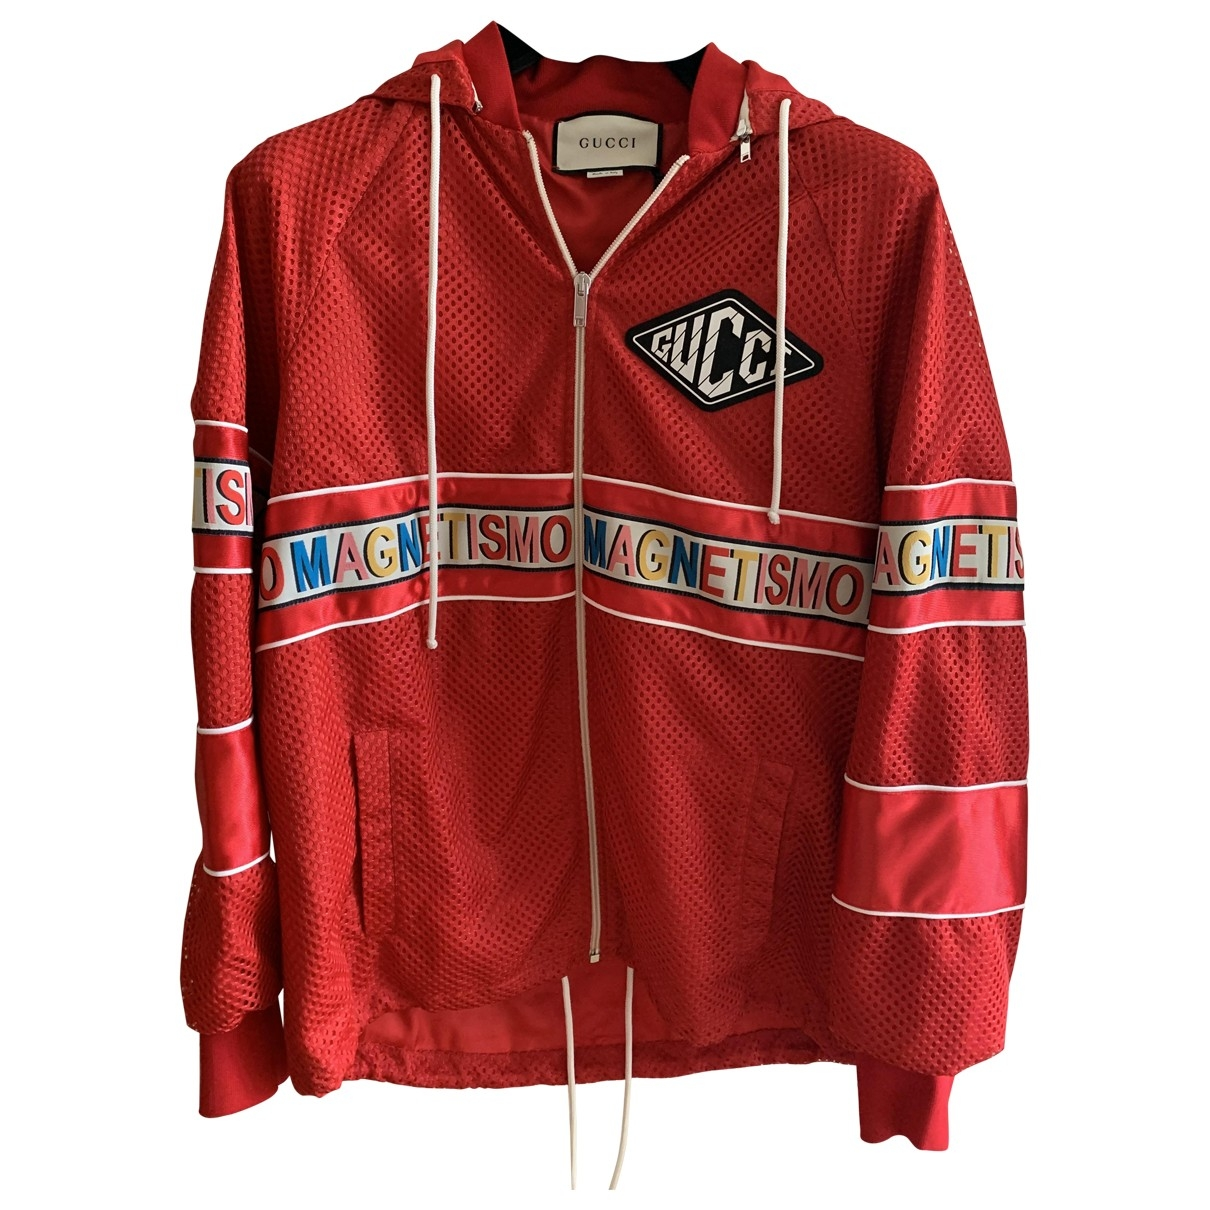 Gucci \N Red jacket for Women S International